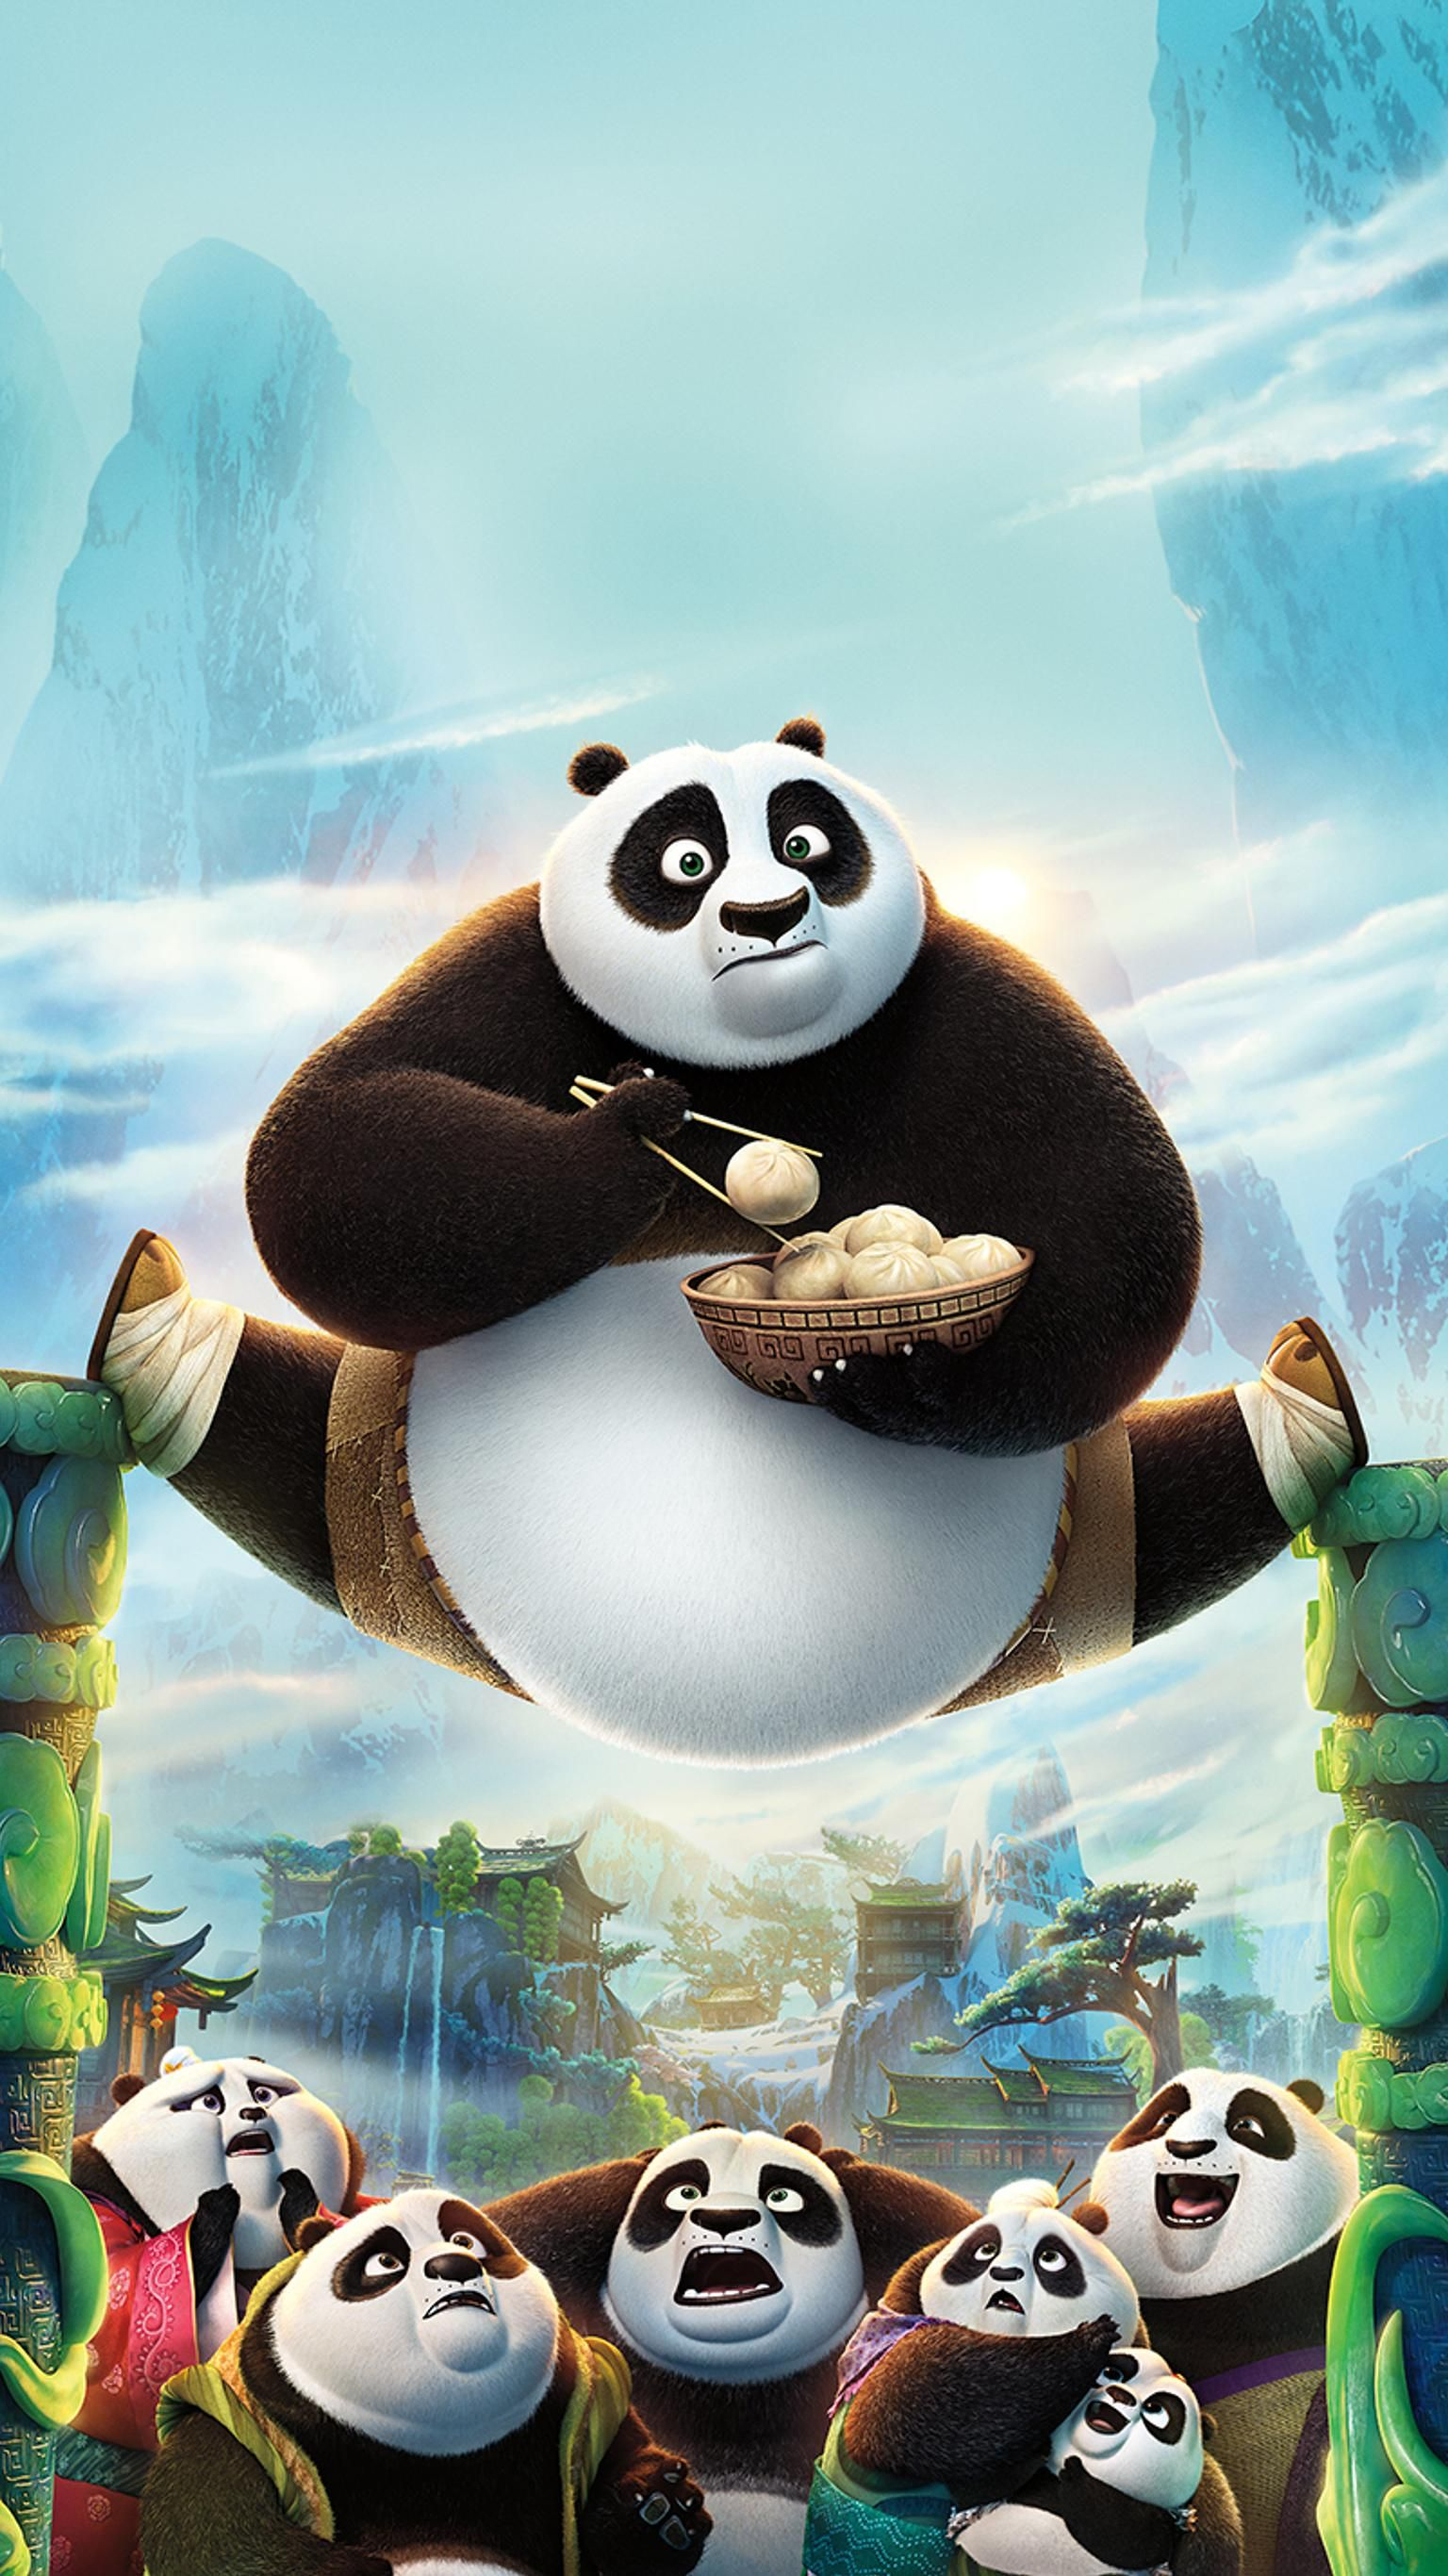 Kung Fu Panda 3 2016 Phone Wallpaper Moviemania Panda Art Kung Fu Panda 3 Panda Wallpapers